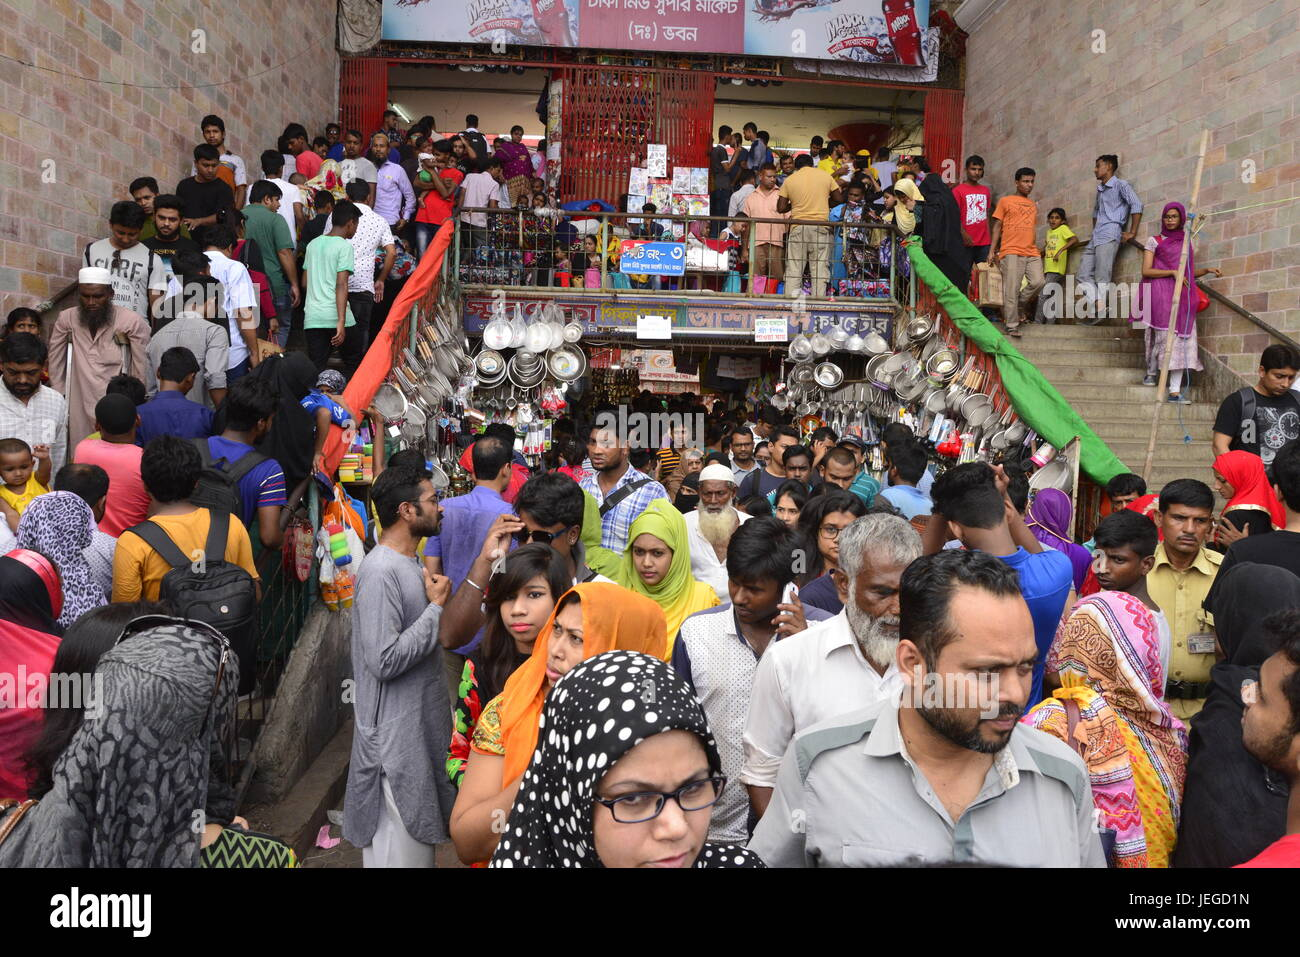 Most Inspiring Bangladesh Eid Al-Fitr Feast - bangladeshi-muslim-peoples-busy-in-shopping-at-new-market-ahead-of-JEGD1N  Collection_479190 .jpg